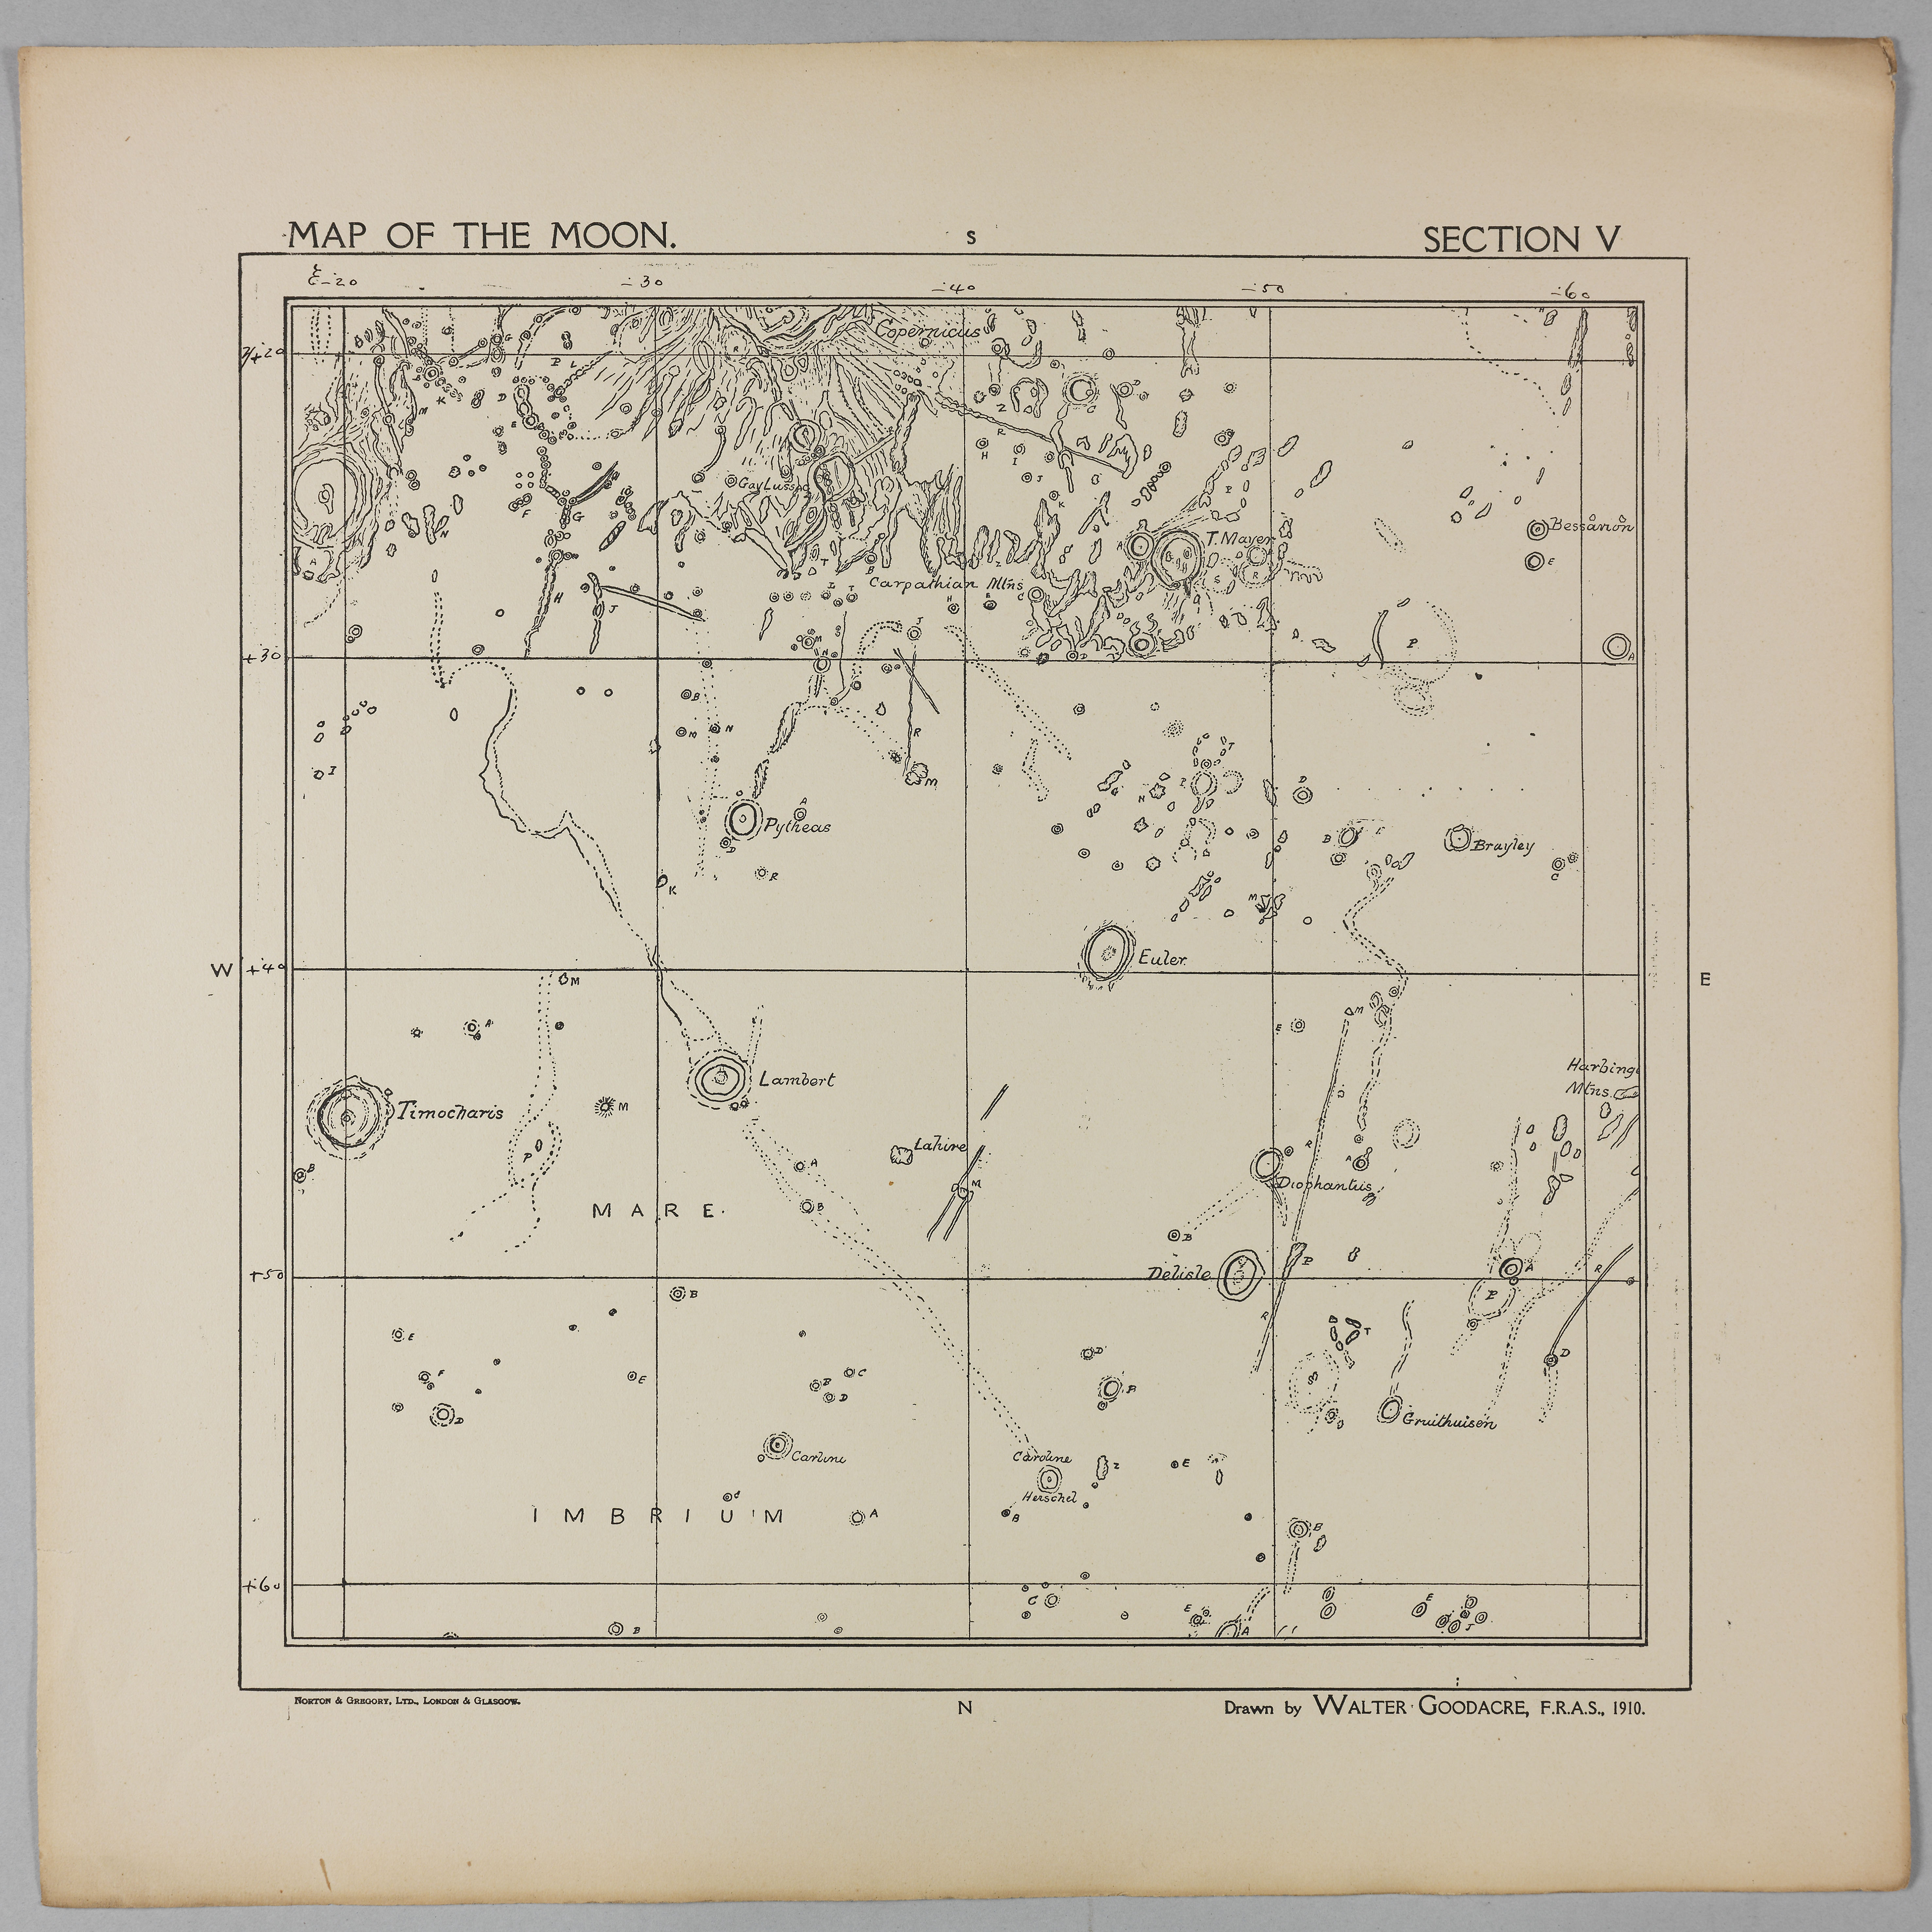 Goodacre's 1910 Map of the Moon: Section 5